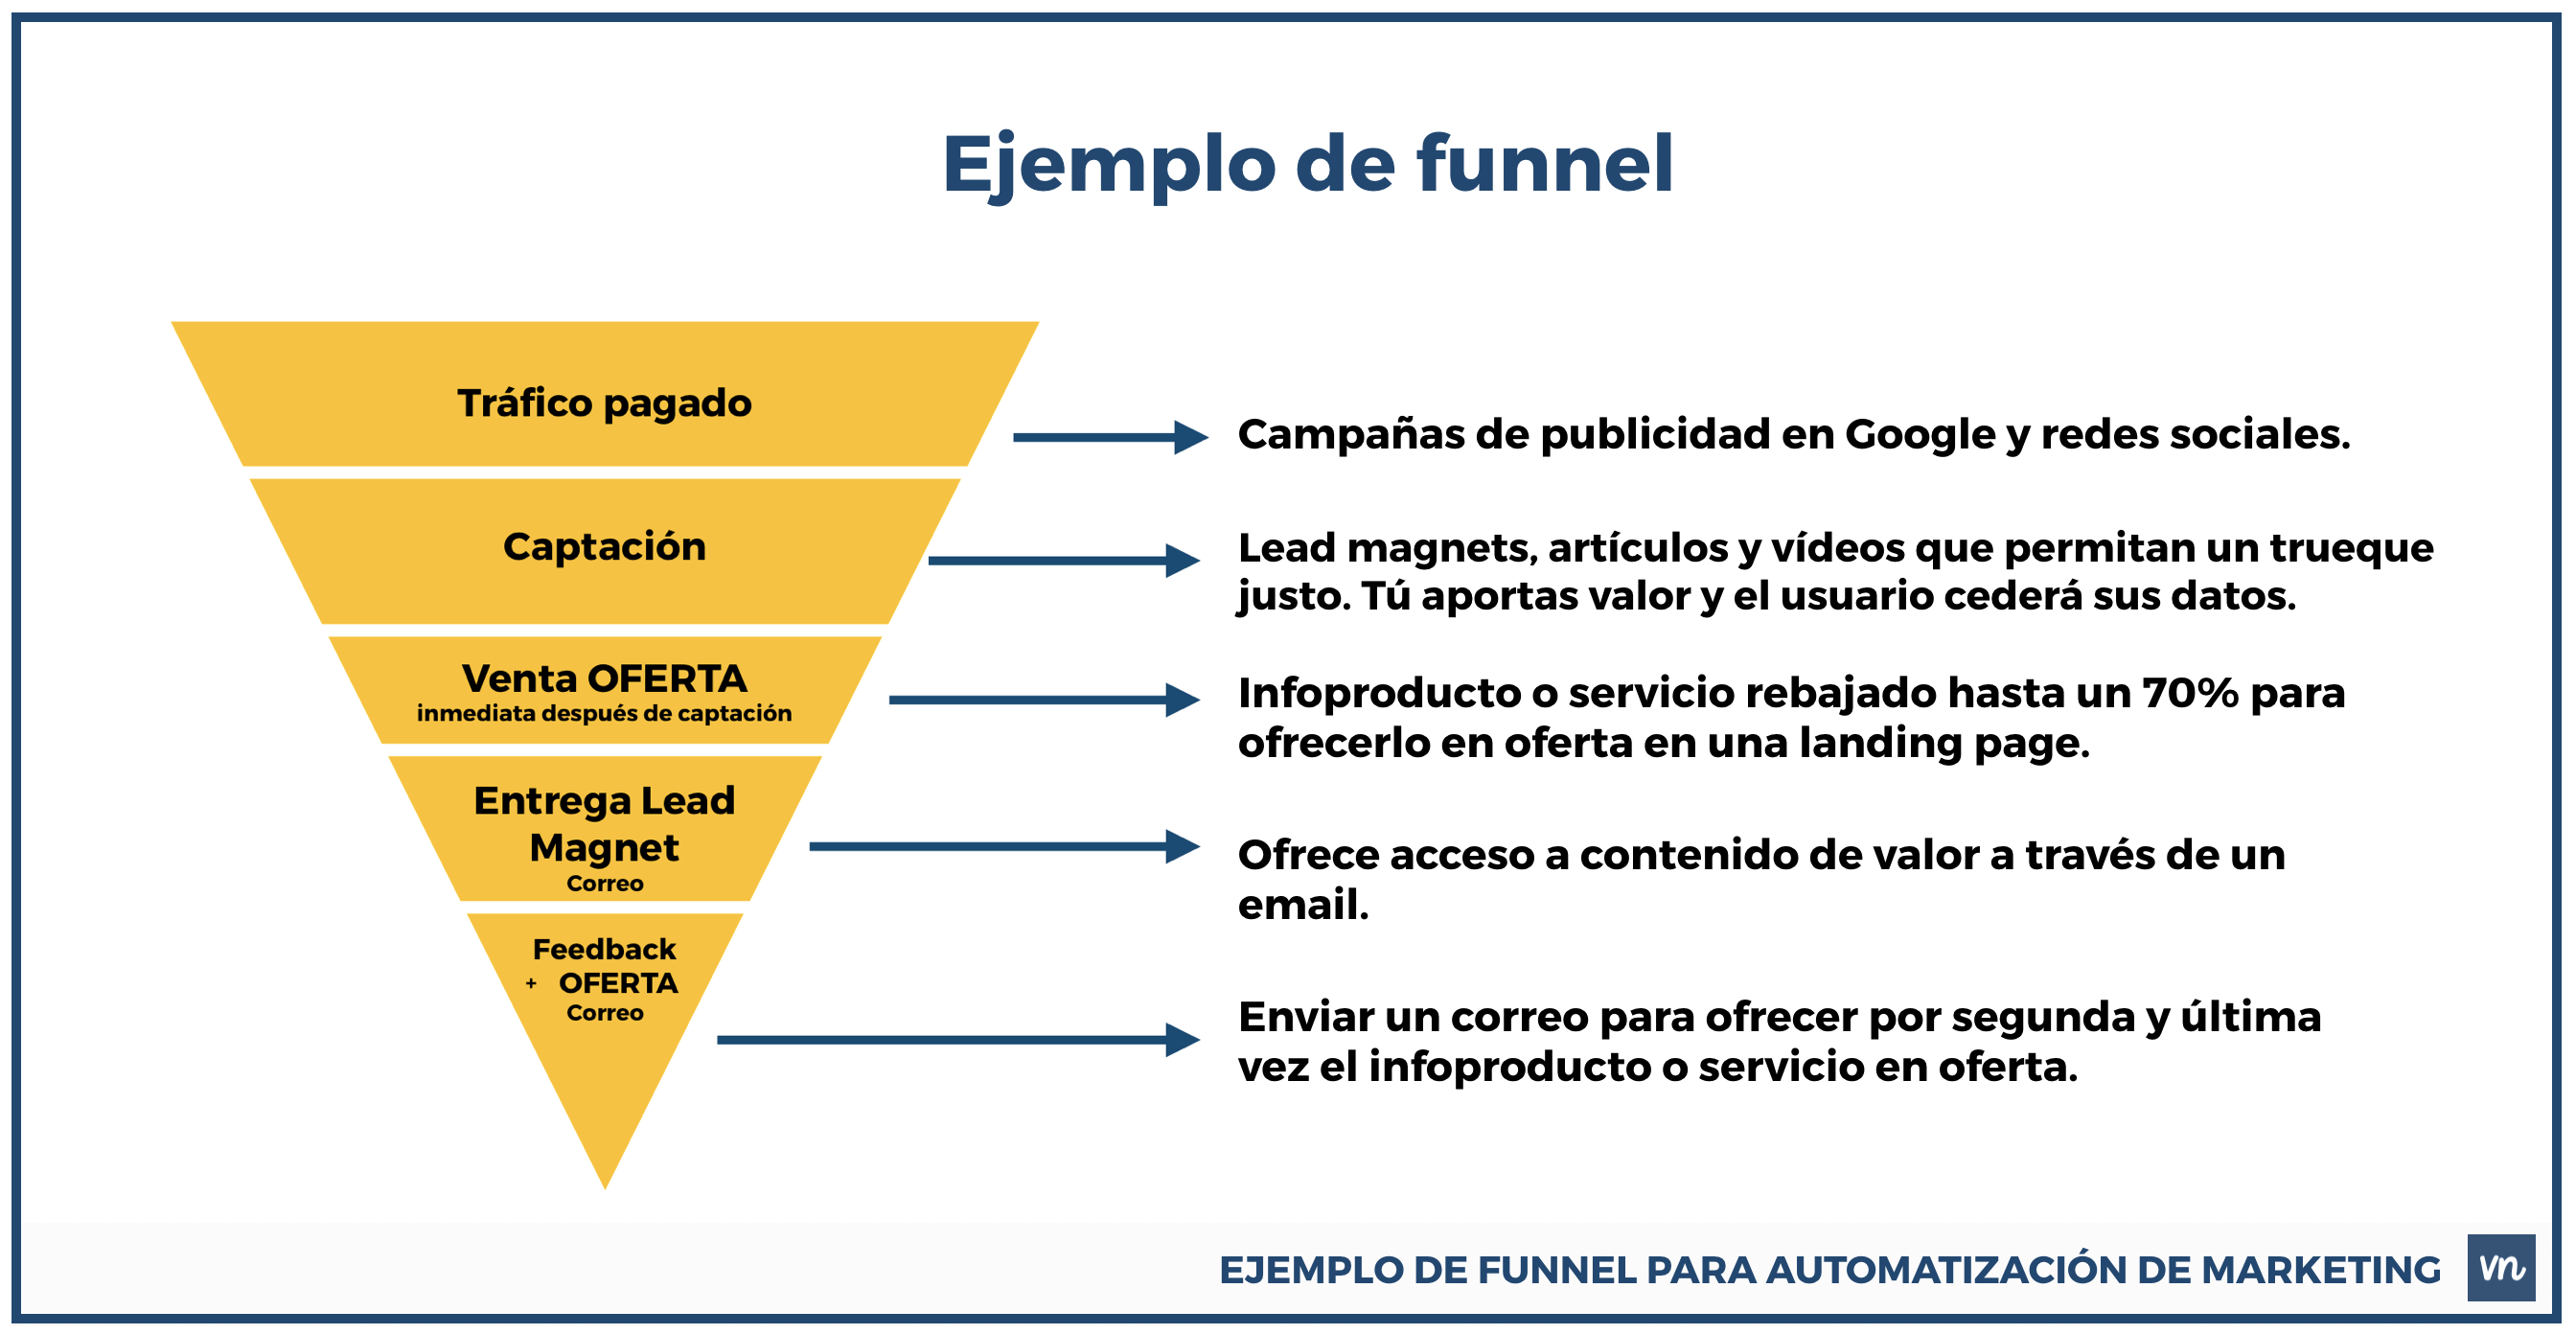 ejemplo funnel automatizacion de marketing